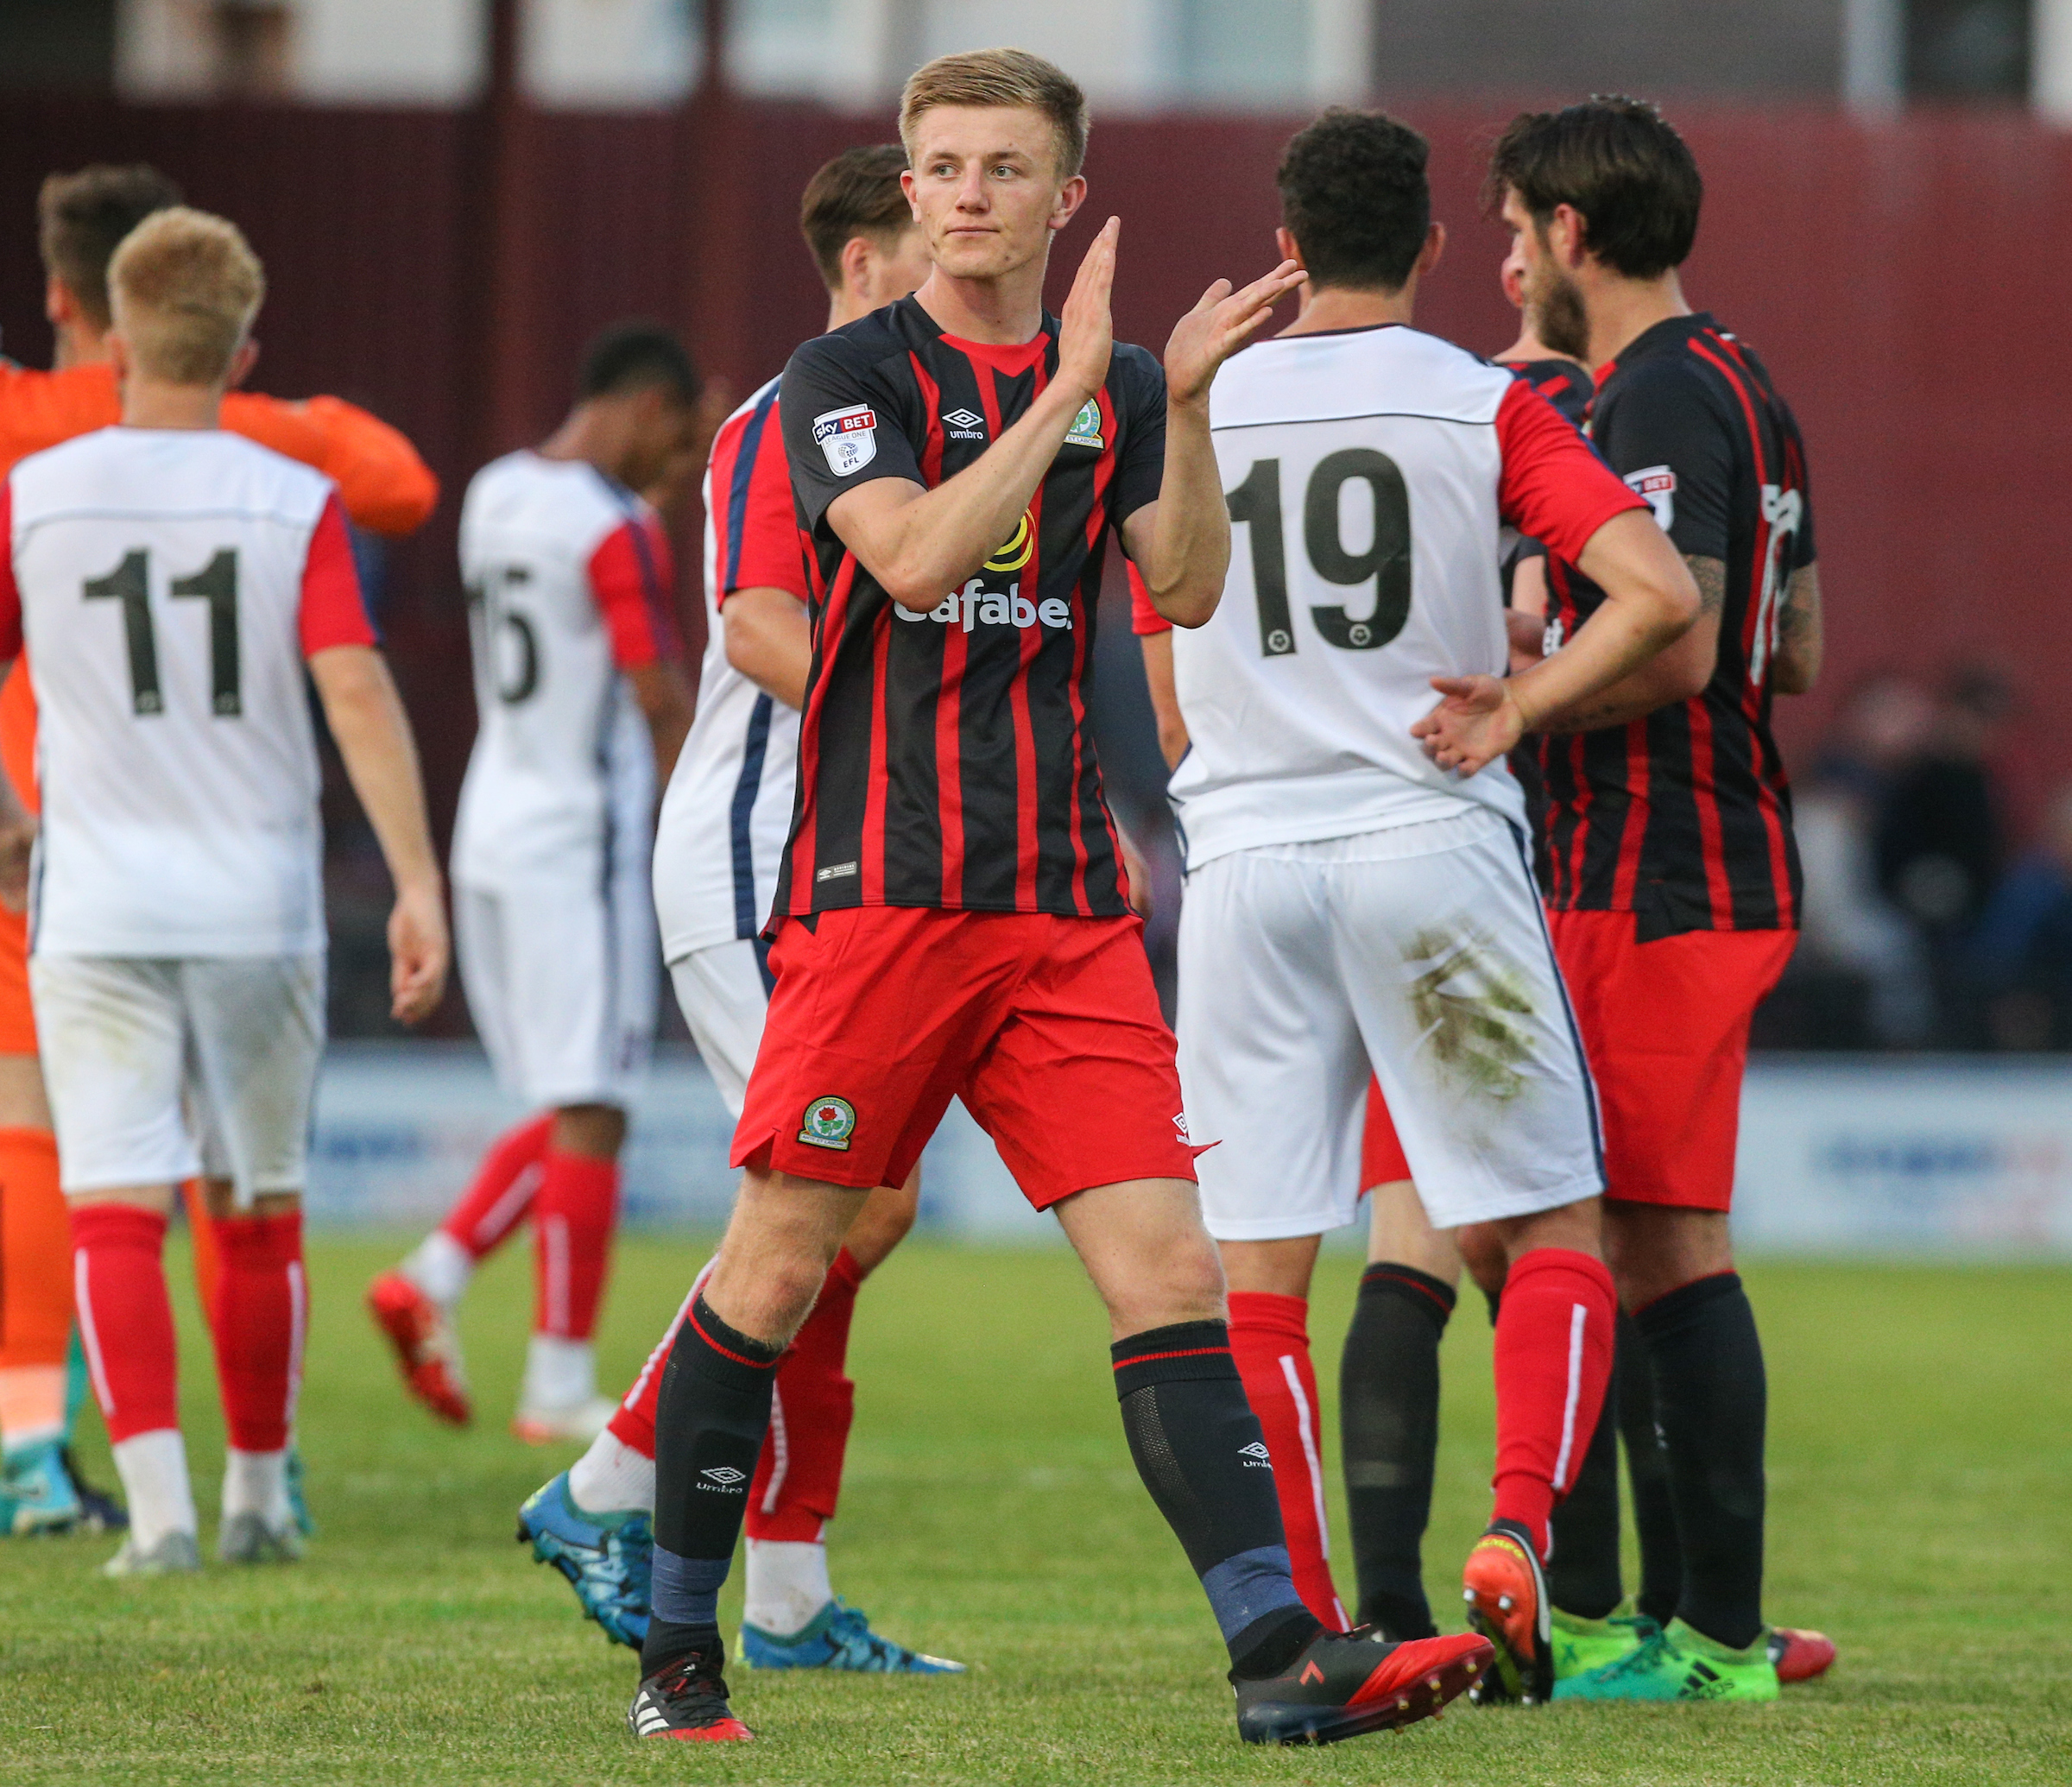 Scott Wharton hasn't featured for Rovers since the pre-season friendly win at York City in July